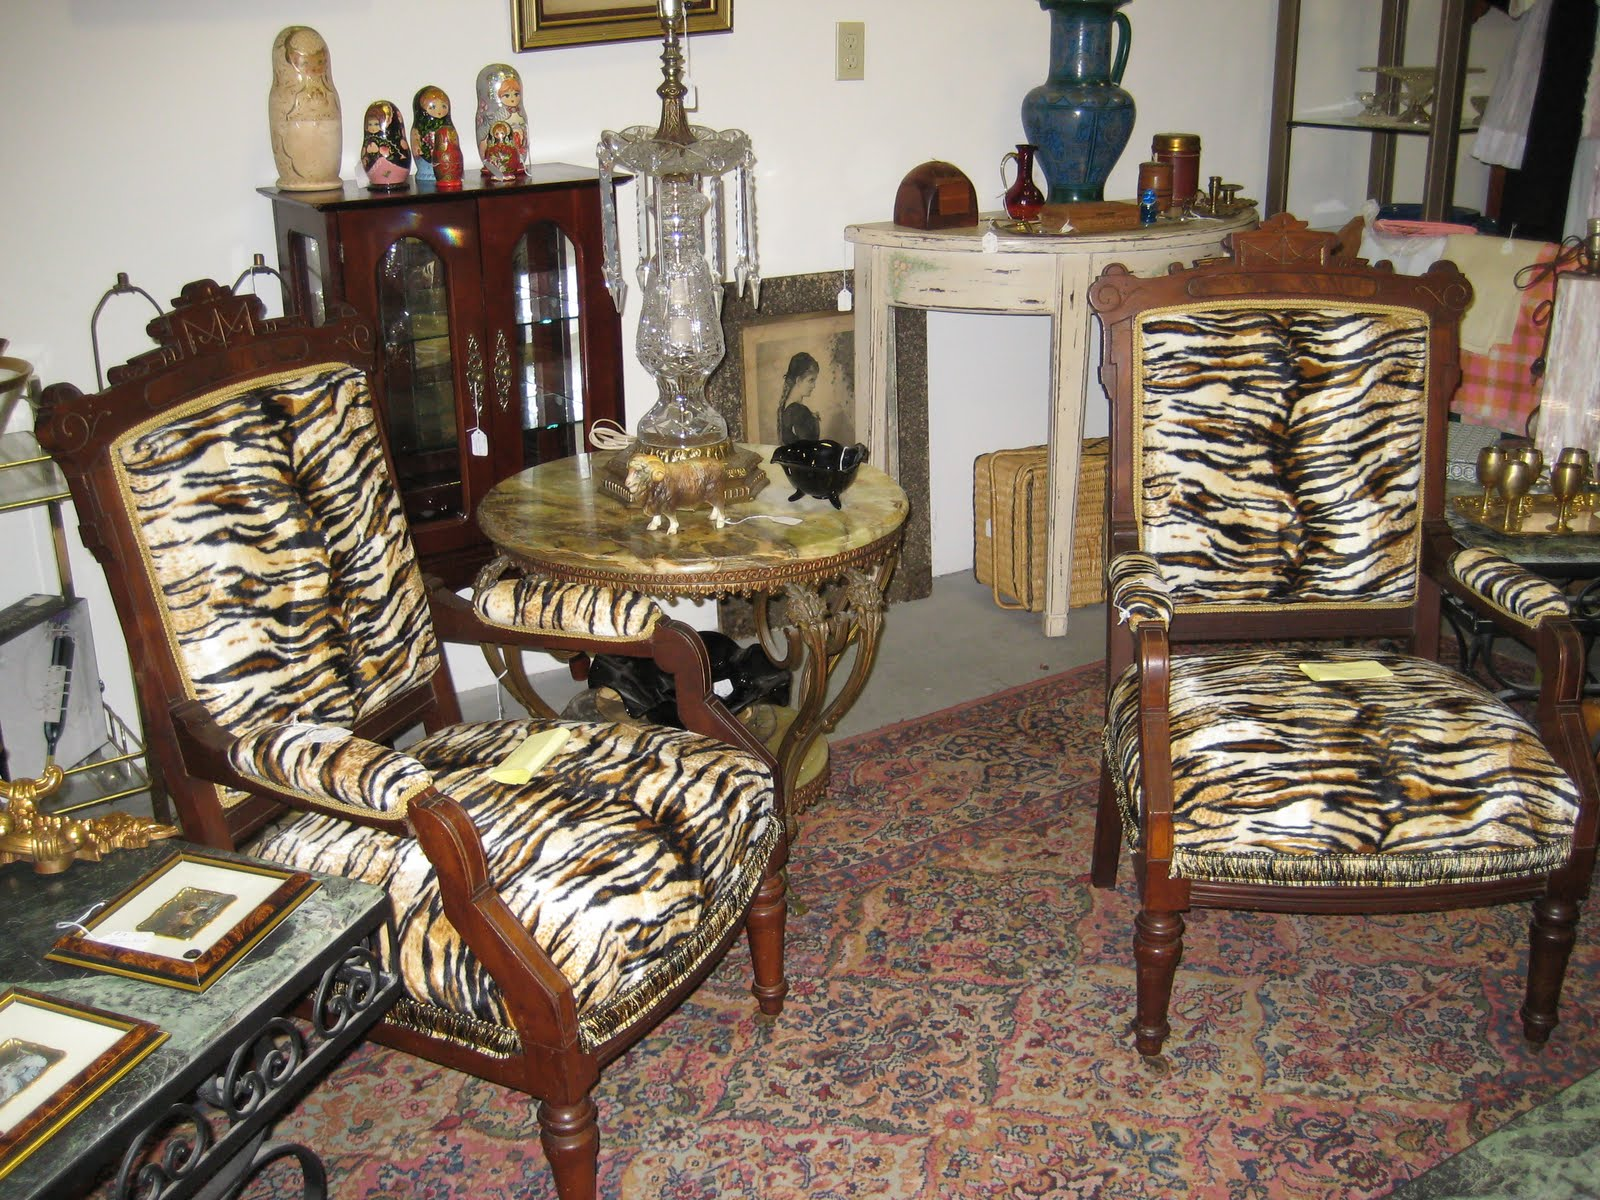 C Dianne Zweig Kitsch N Stuff Introducing Bronx Renaissance Decorating With Retro Showy Antiques And Collectibles,2 Bedroom Apartments For Rent Edmonton South